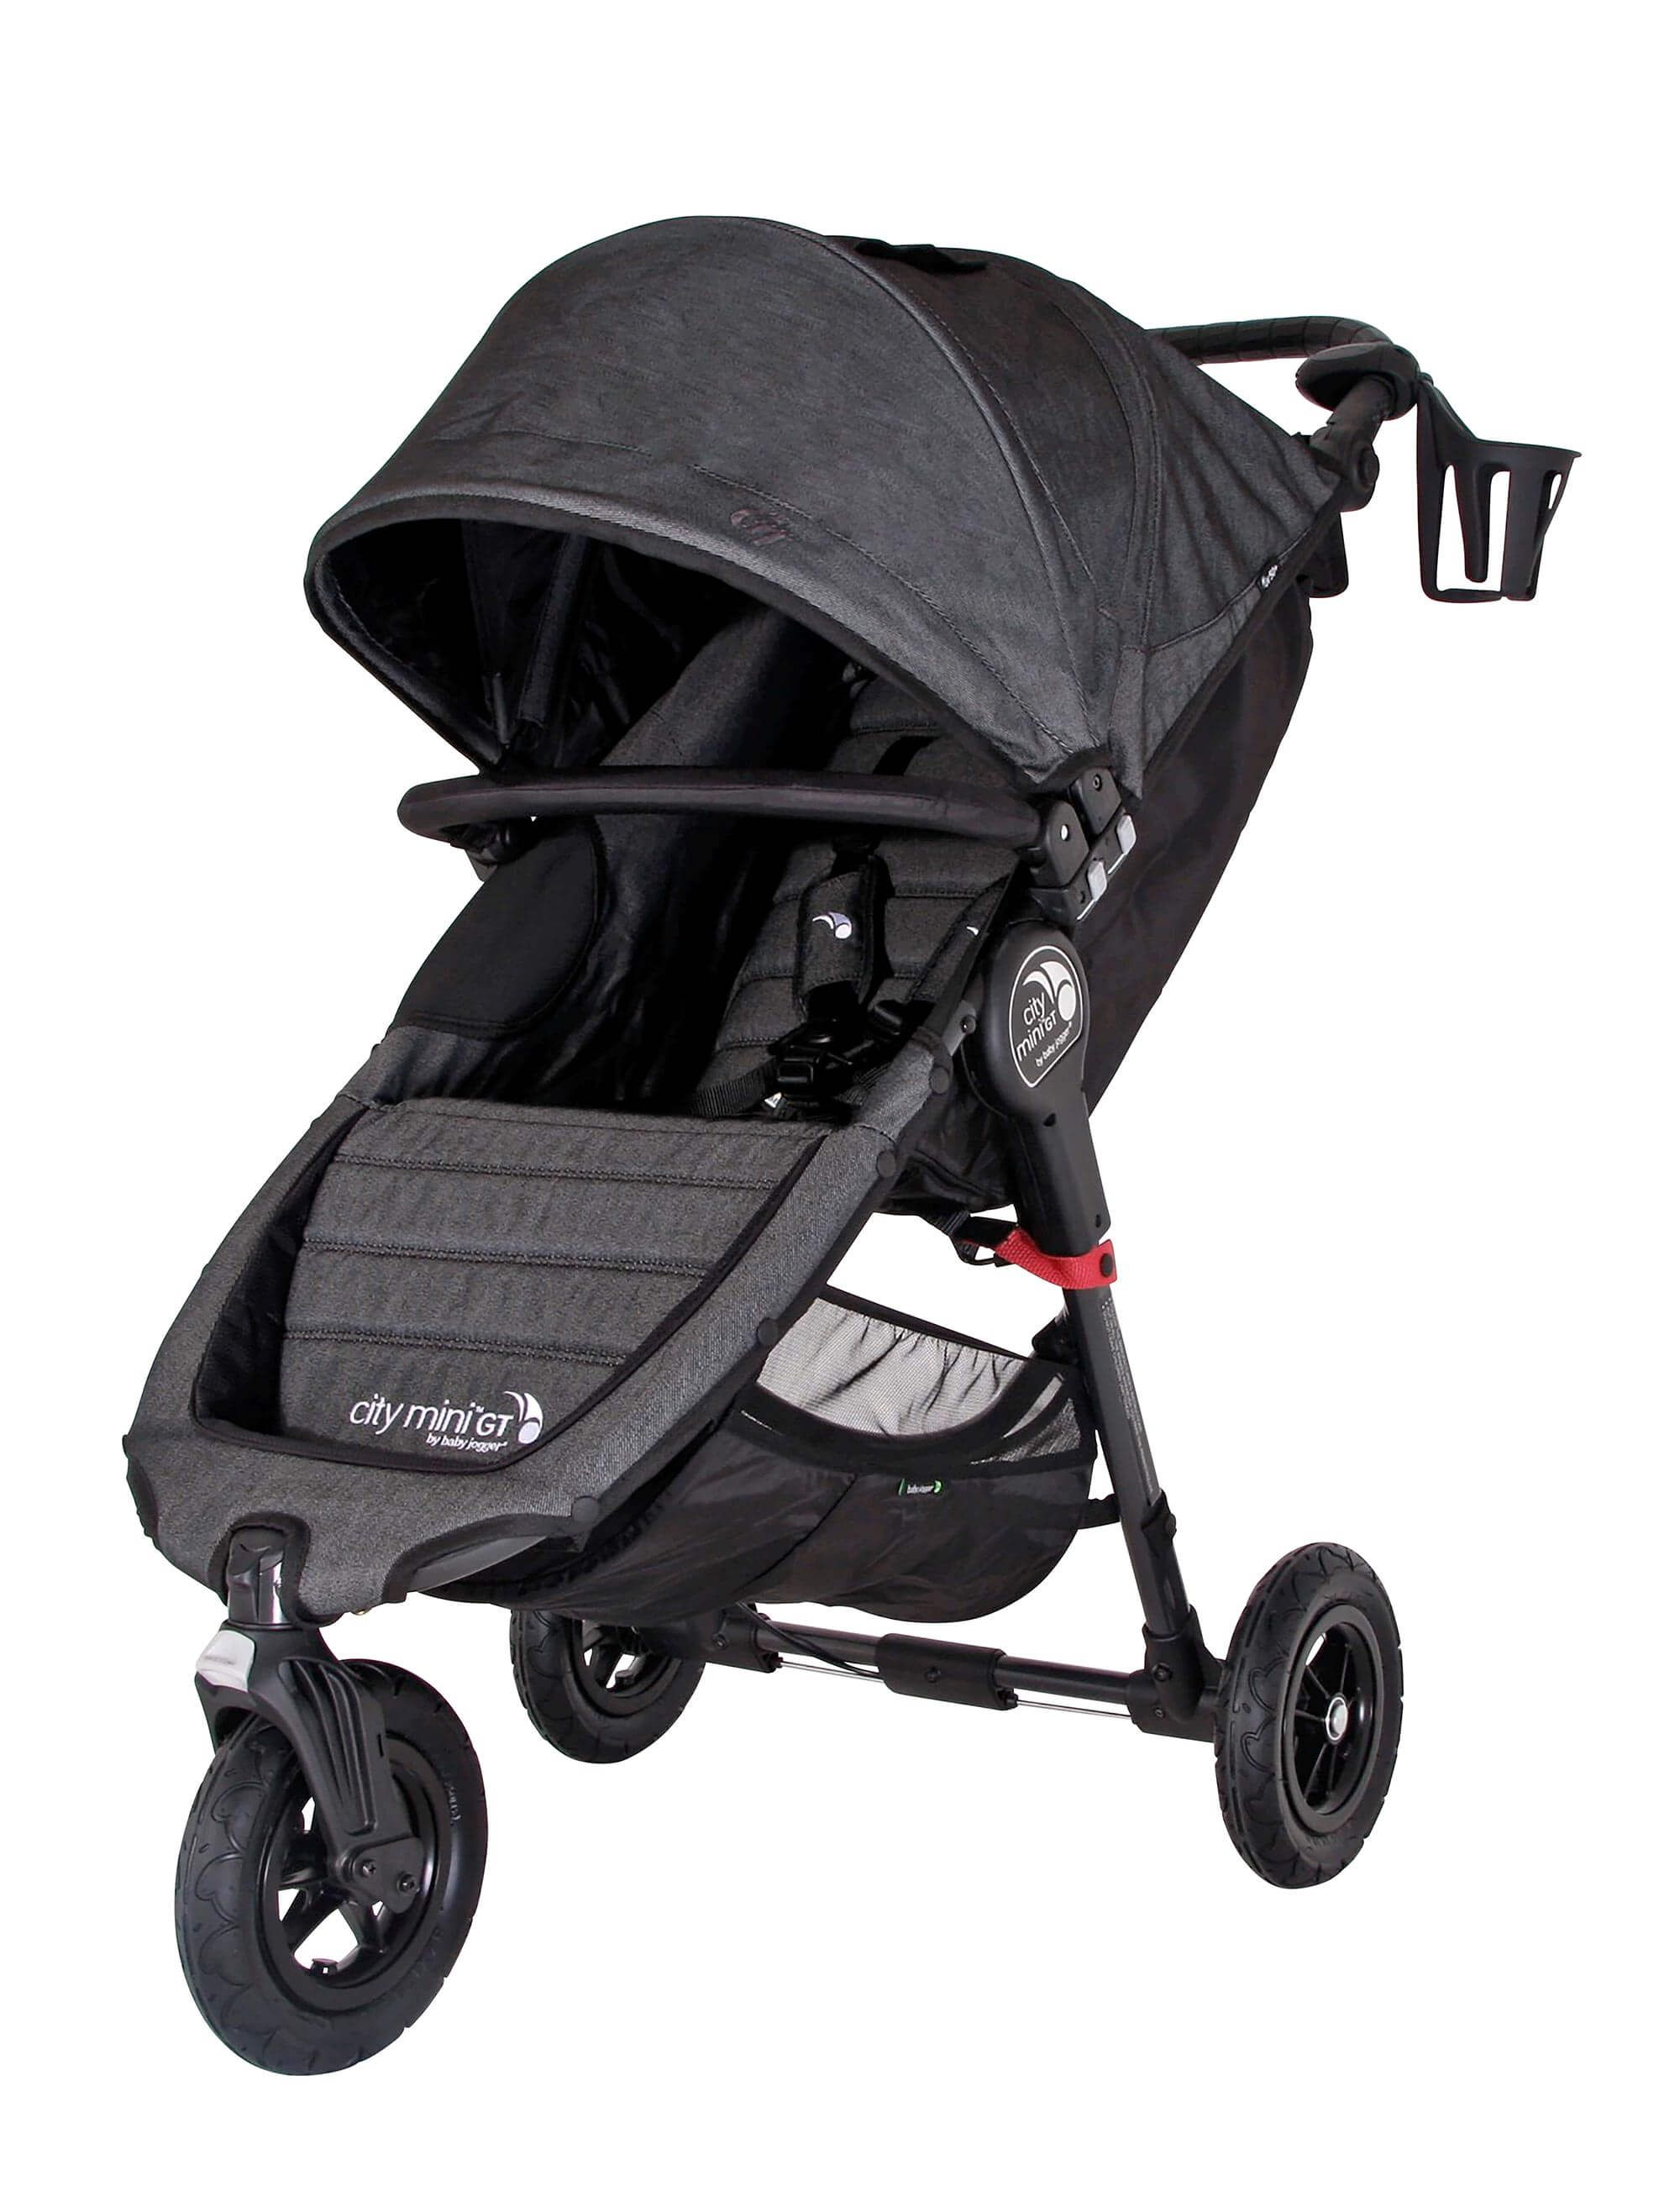 city mini™ GT Baby jogger, City mini gt, Baby strollers